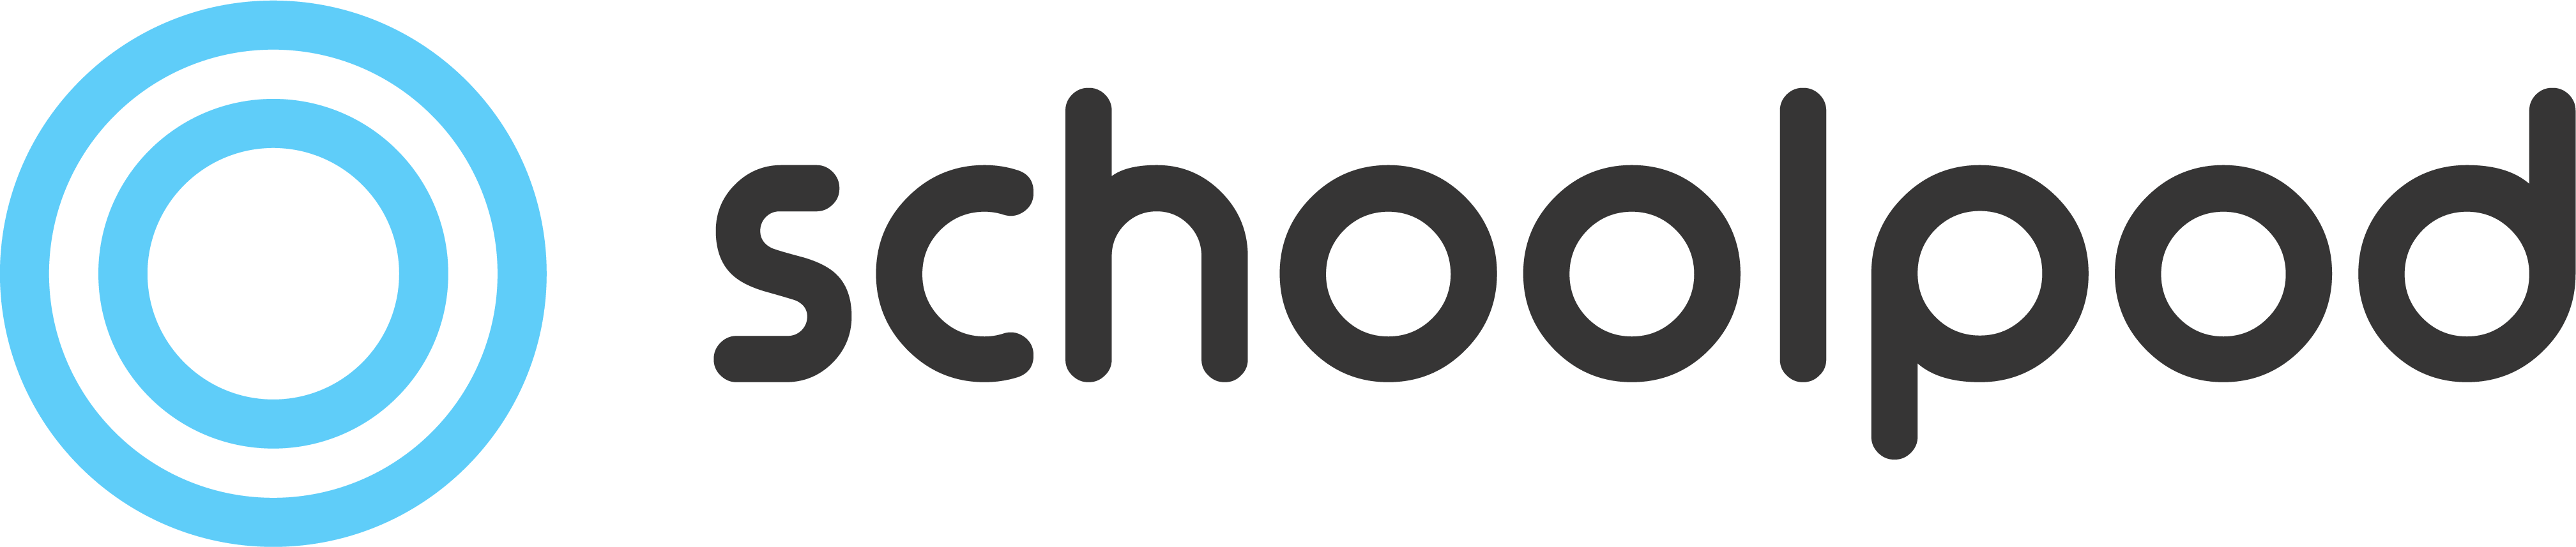 schoolpod - Groupcall integration partner